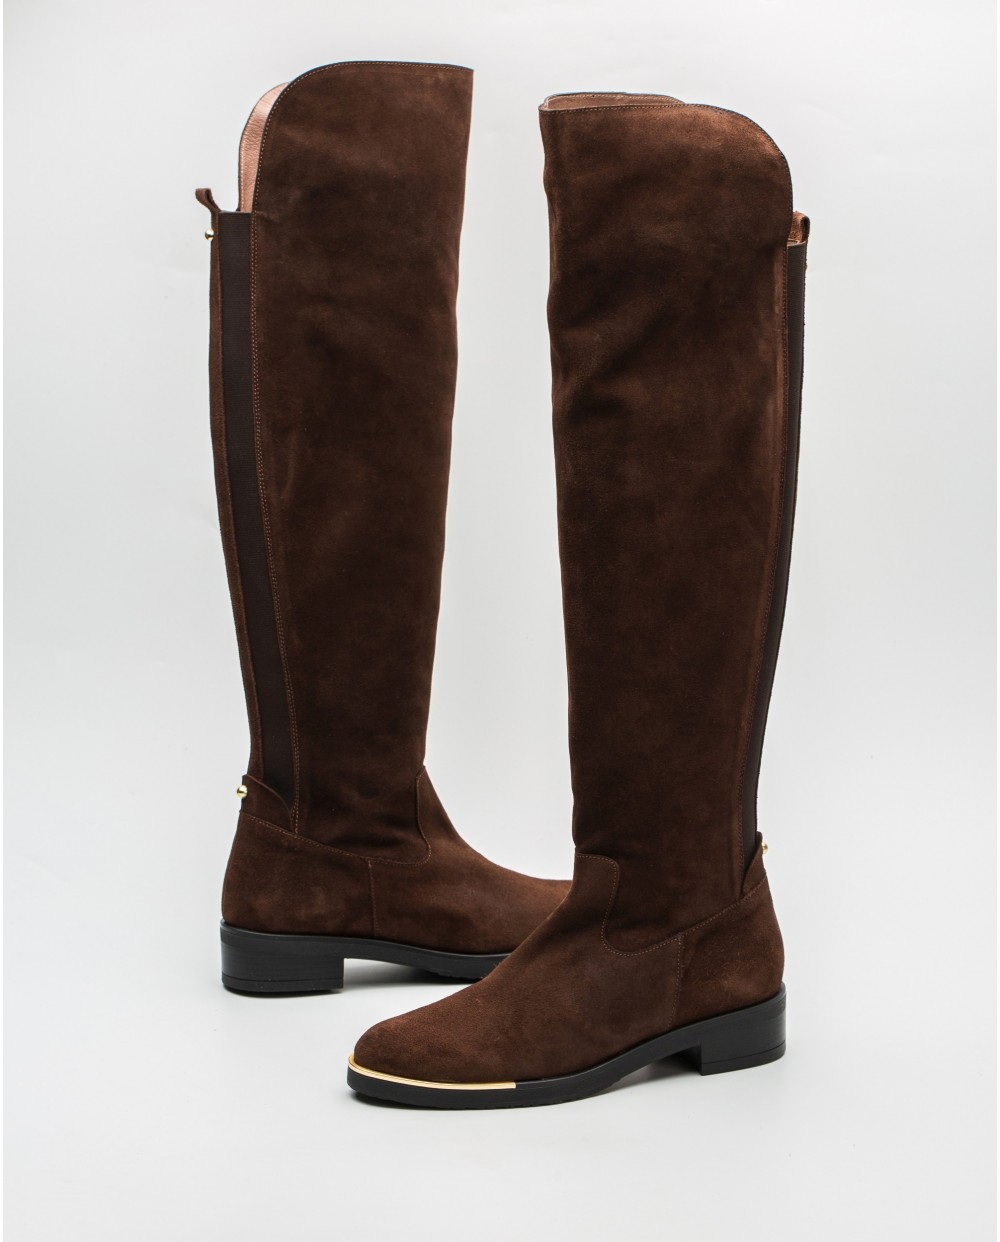 XL suede boots